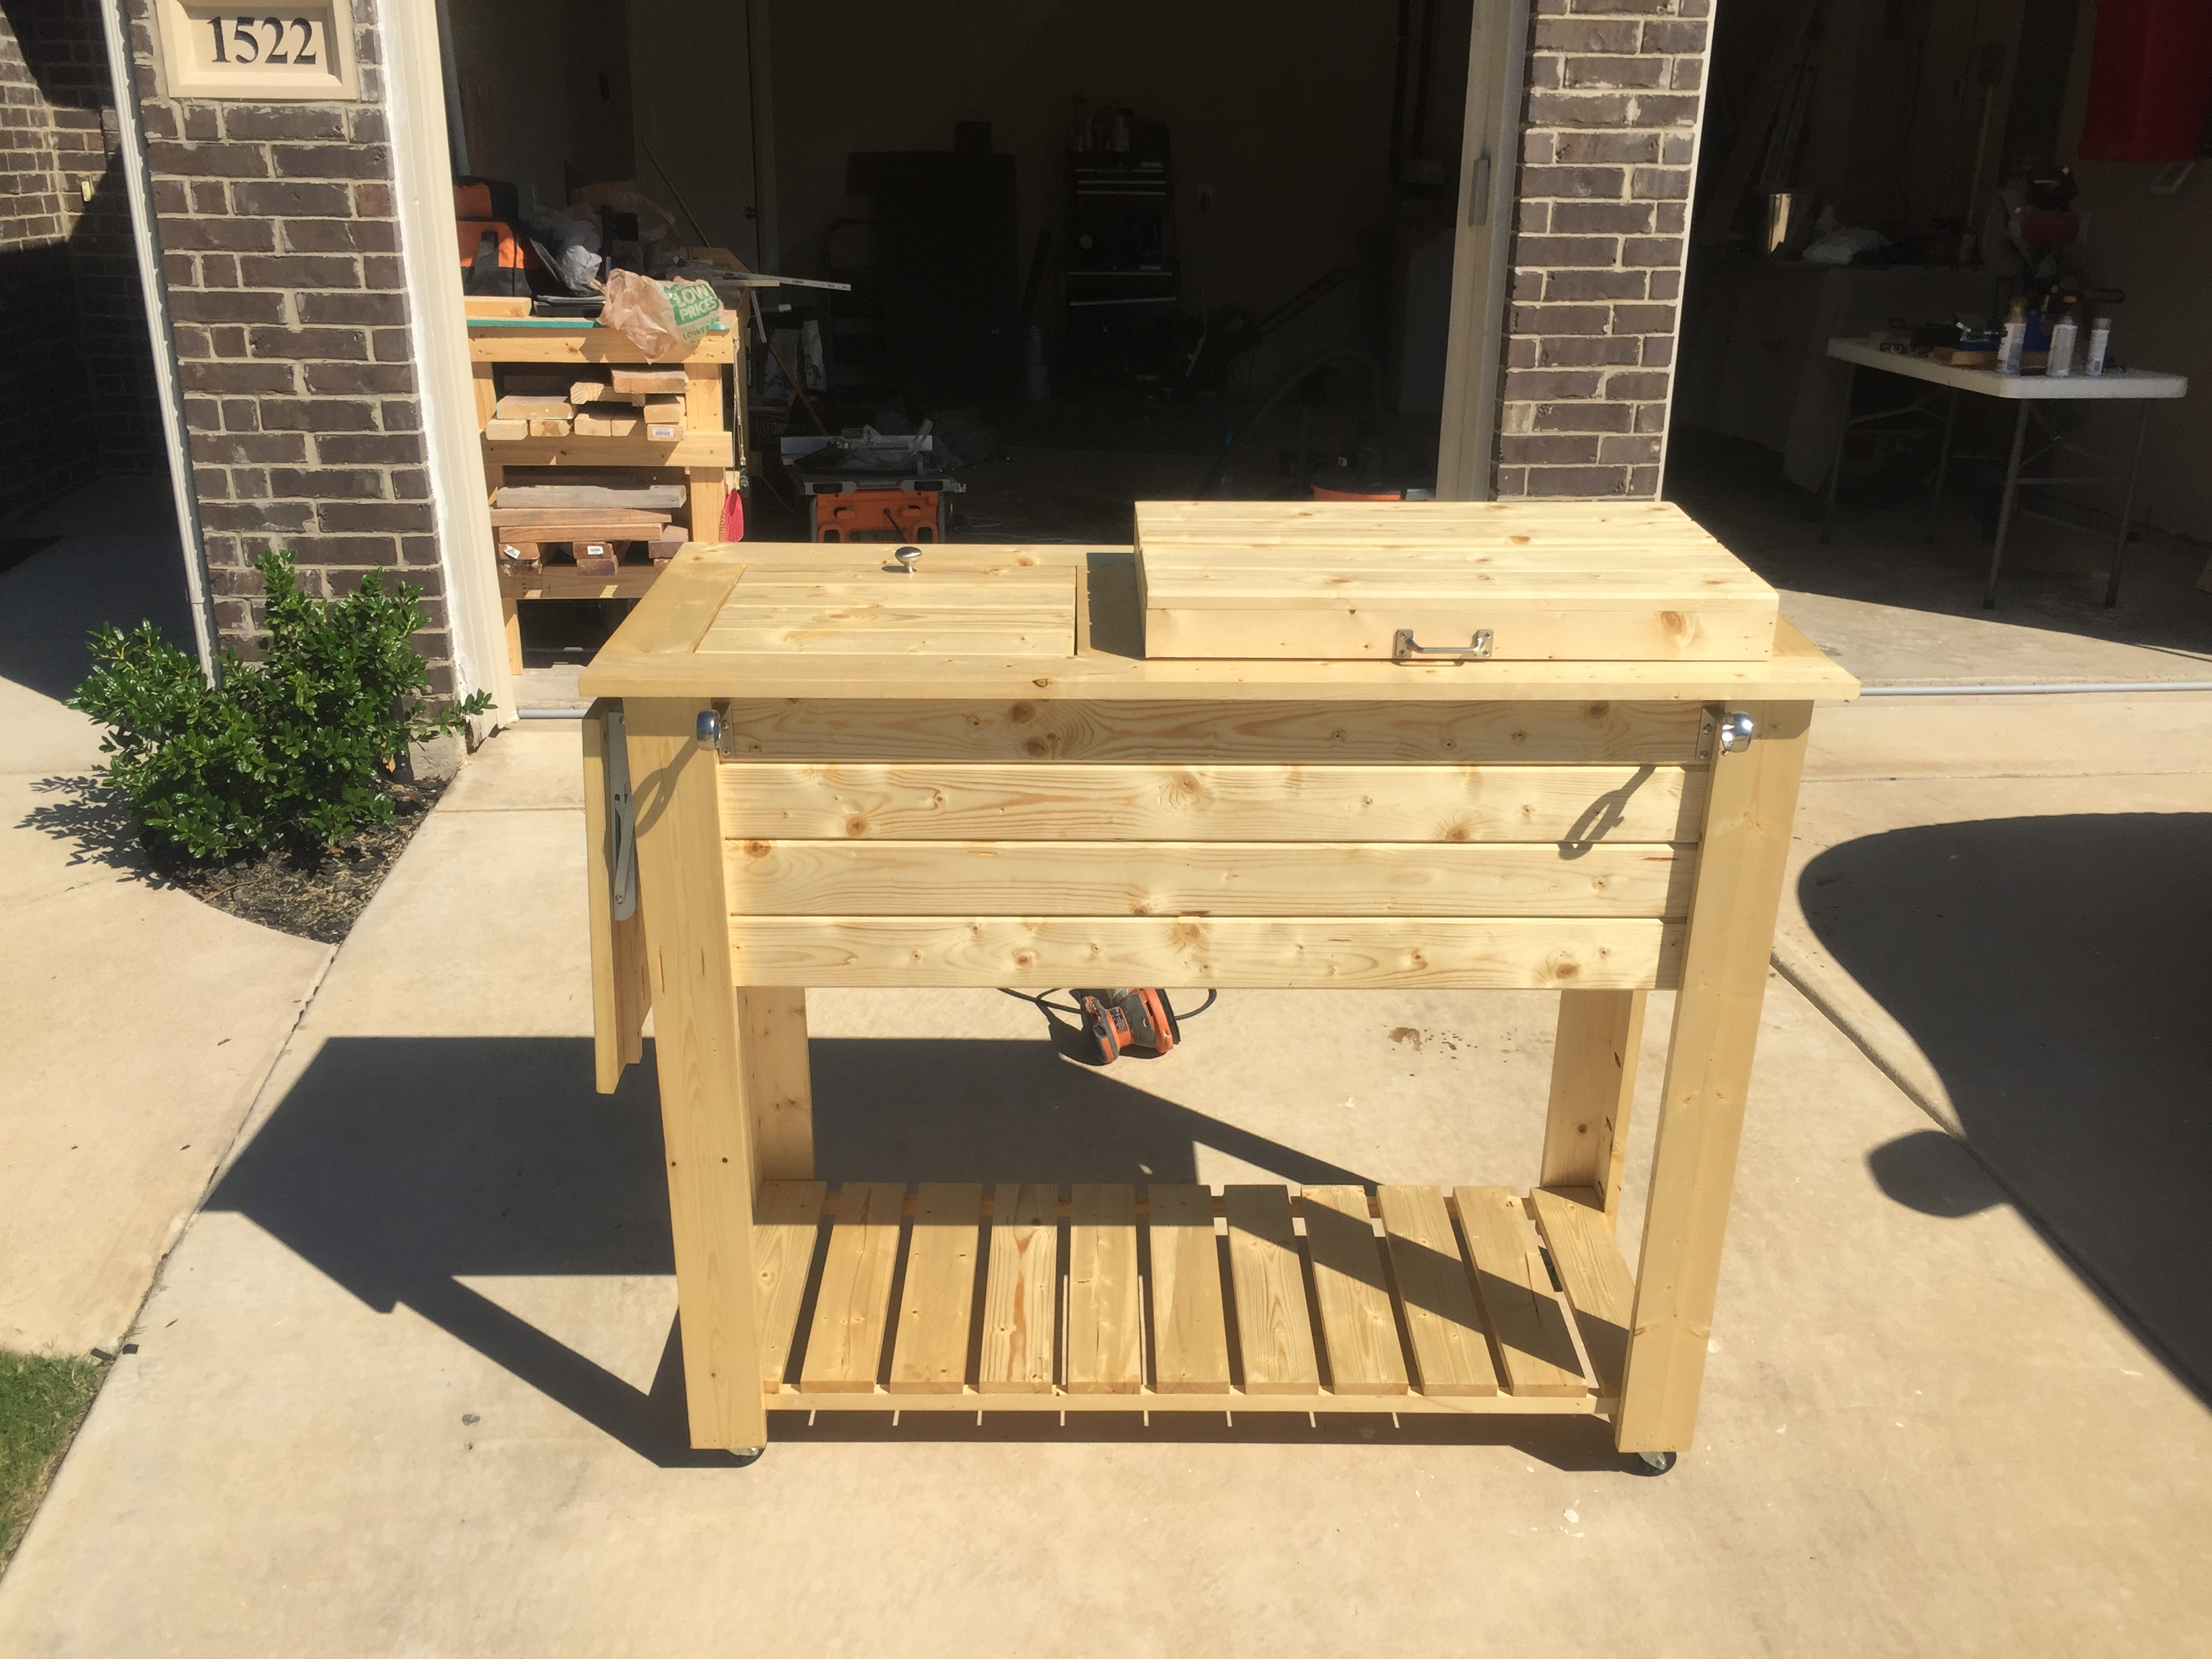 today discovery barnwood product shipping cart free stand patio toys outdoor backyard sports debc overstock cooler